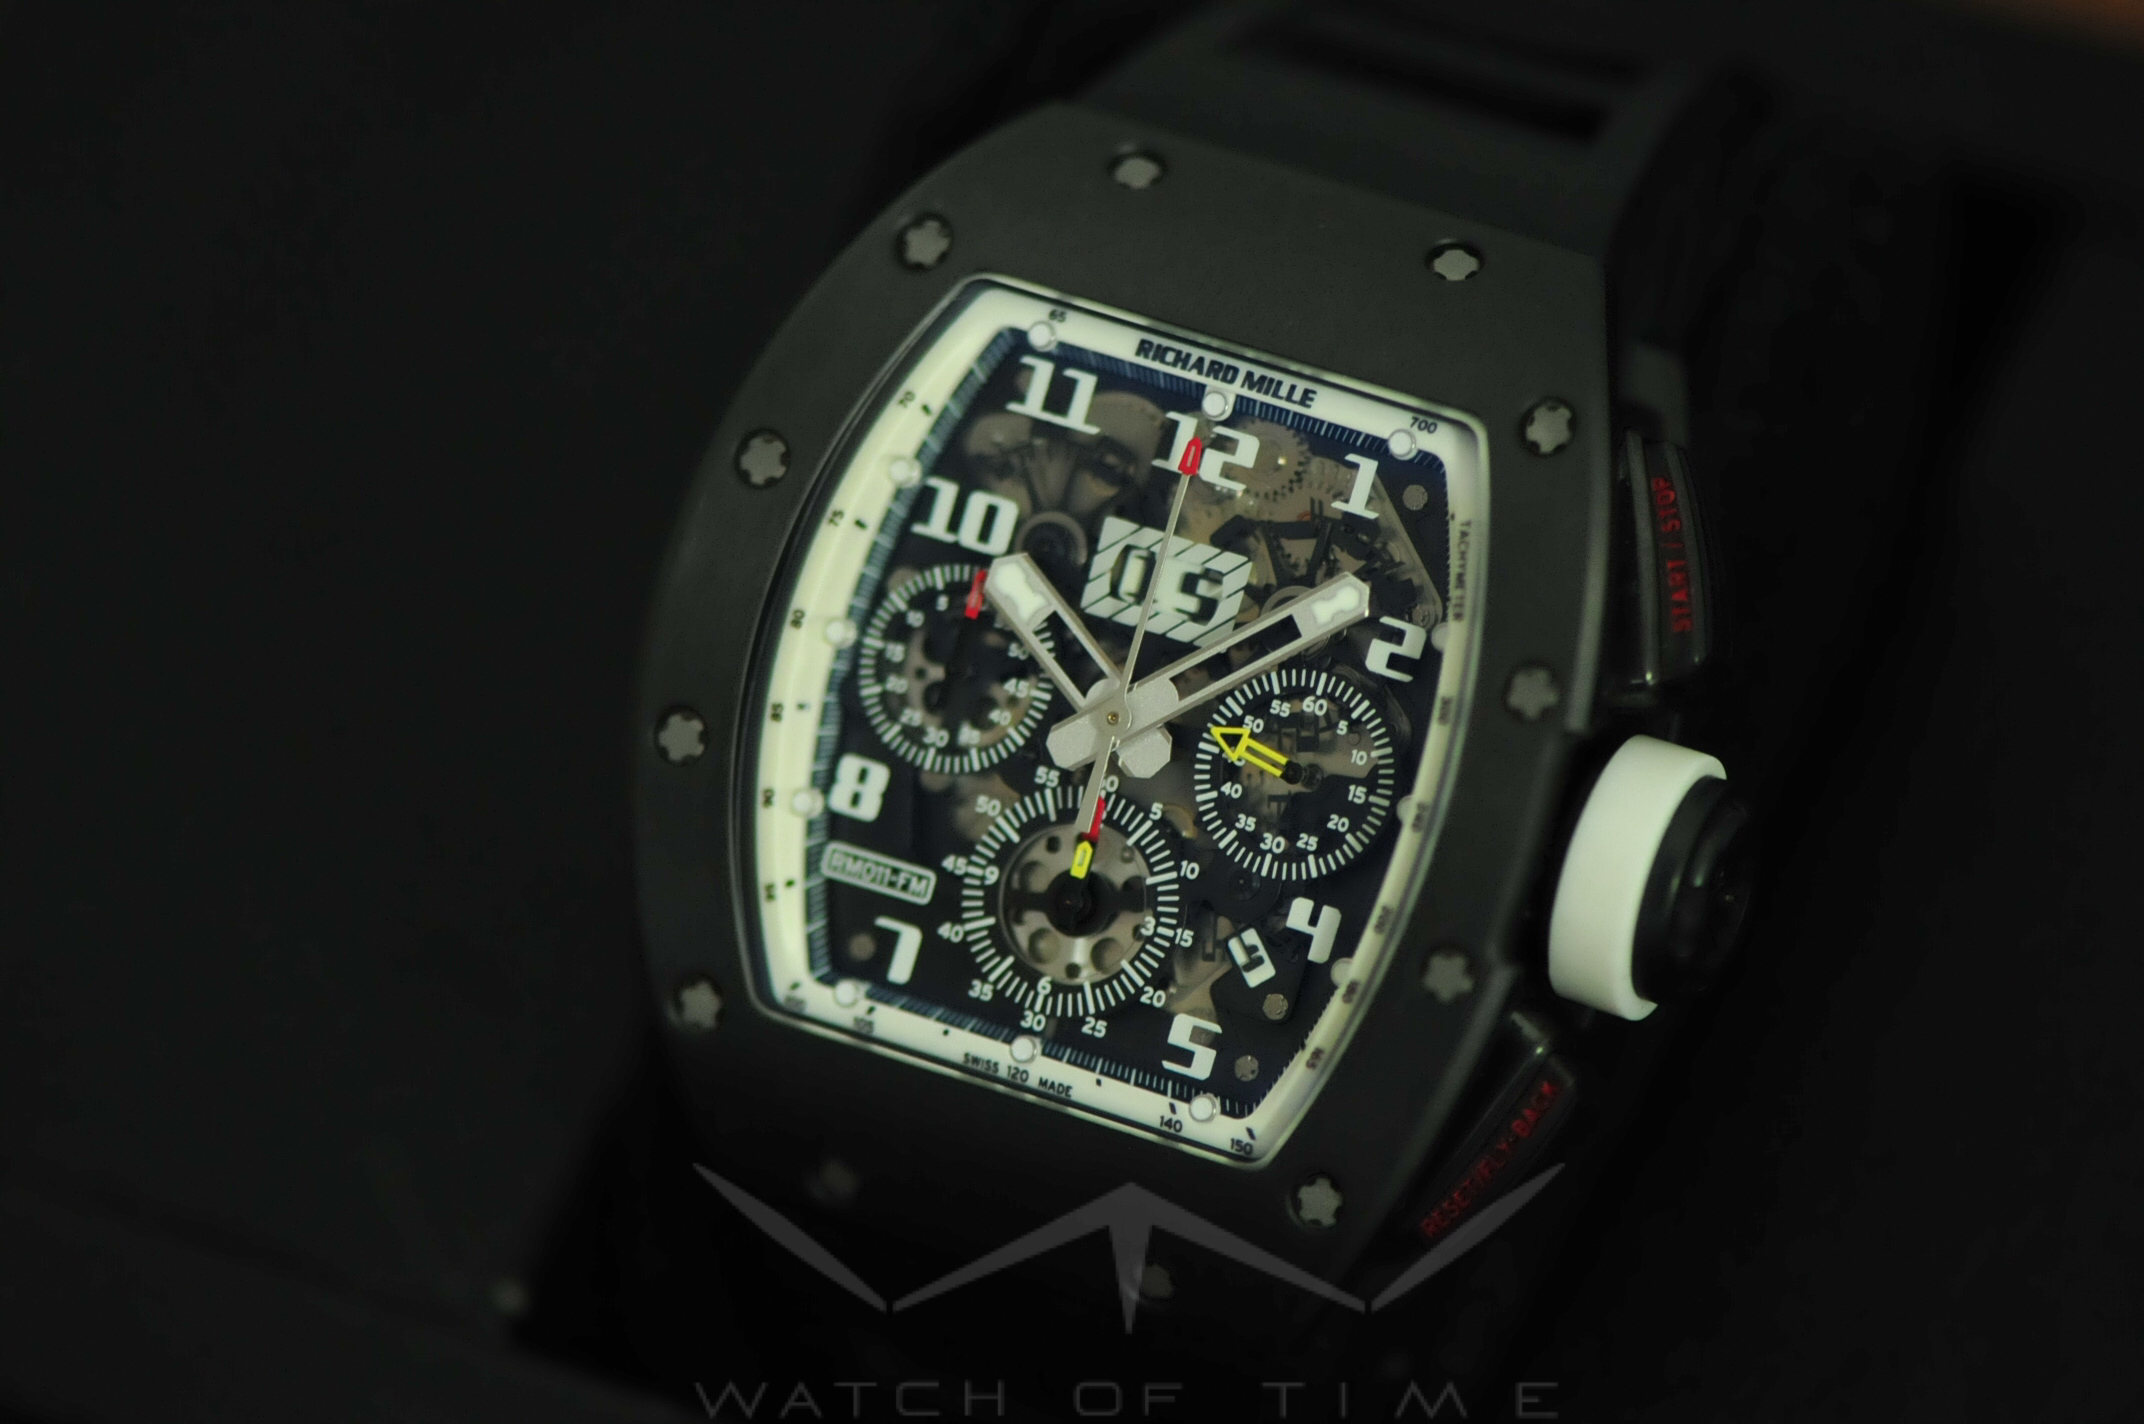 switching it up with a Richard Mille timepiece